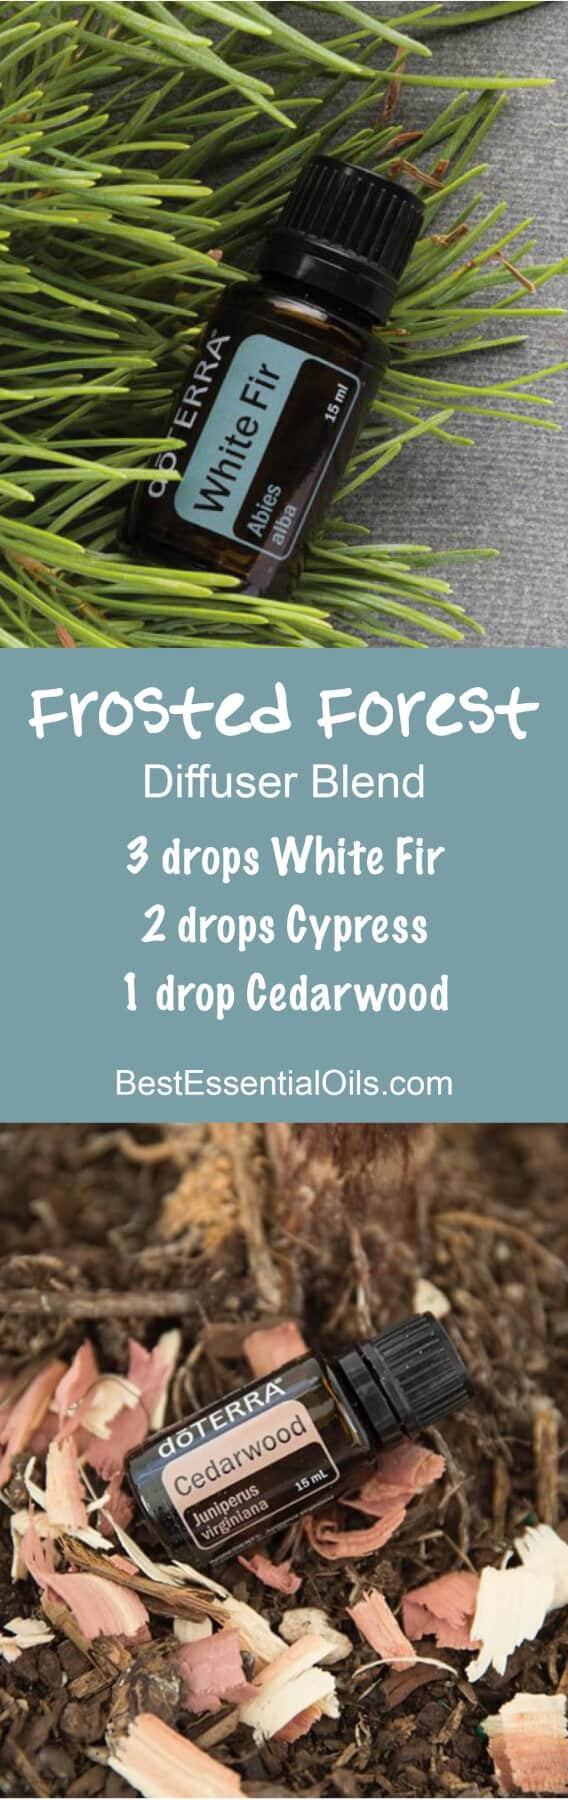 Frosted Forest doTERRA Diffuser Blend